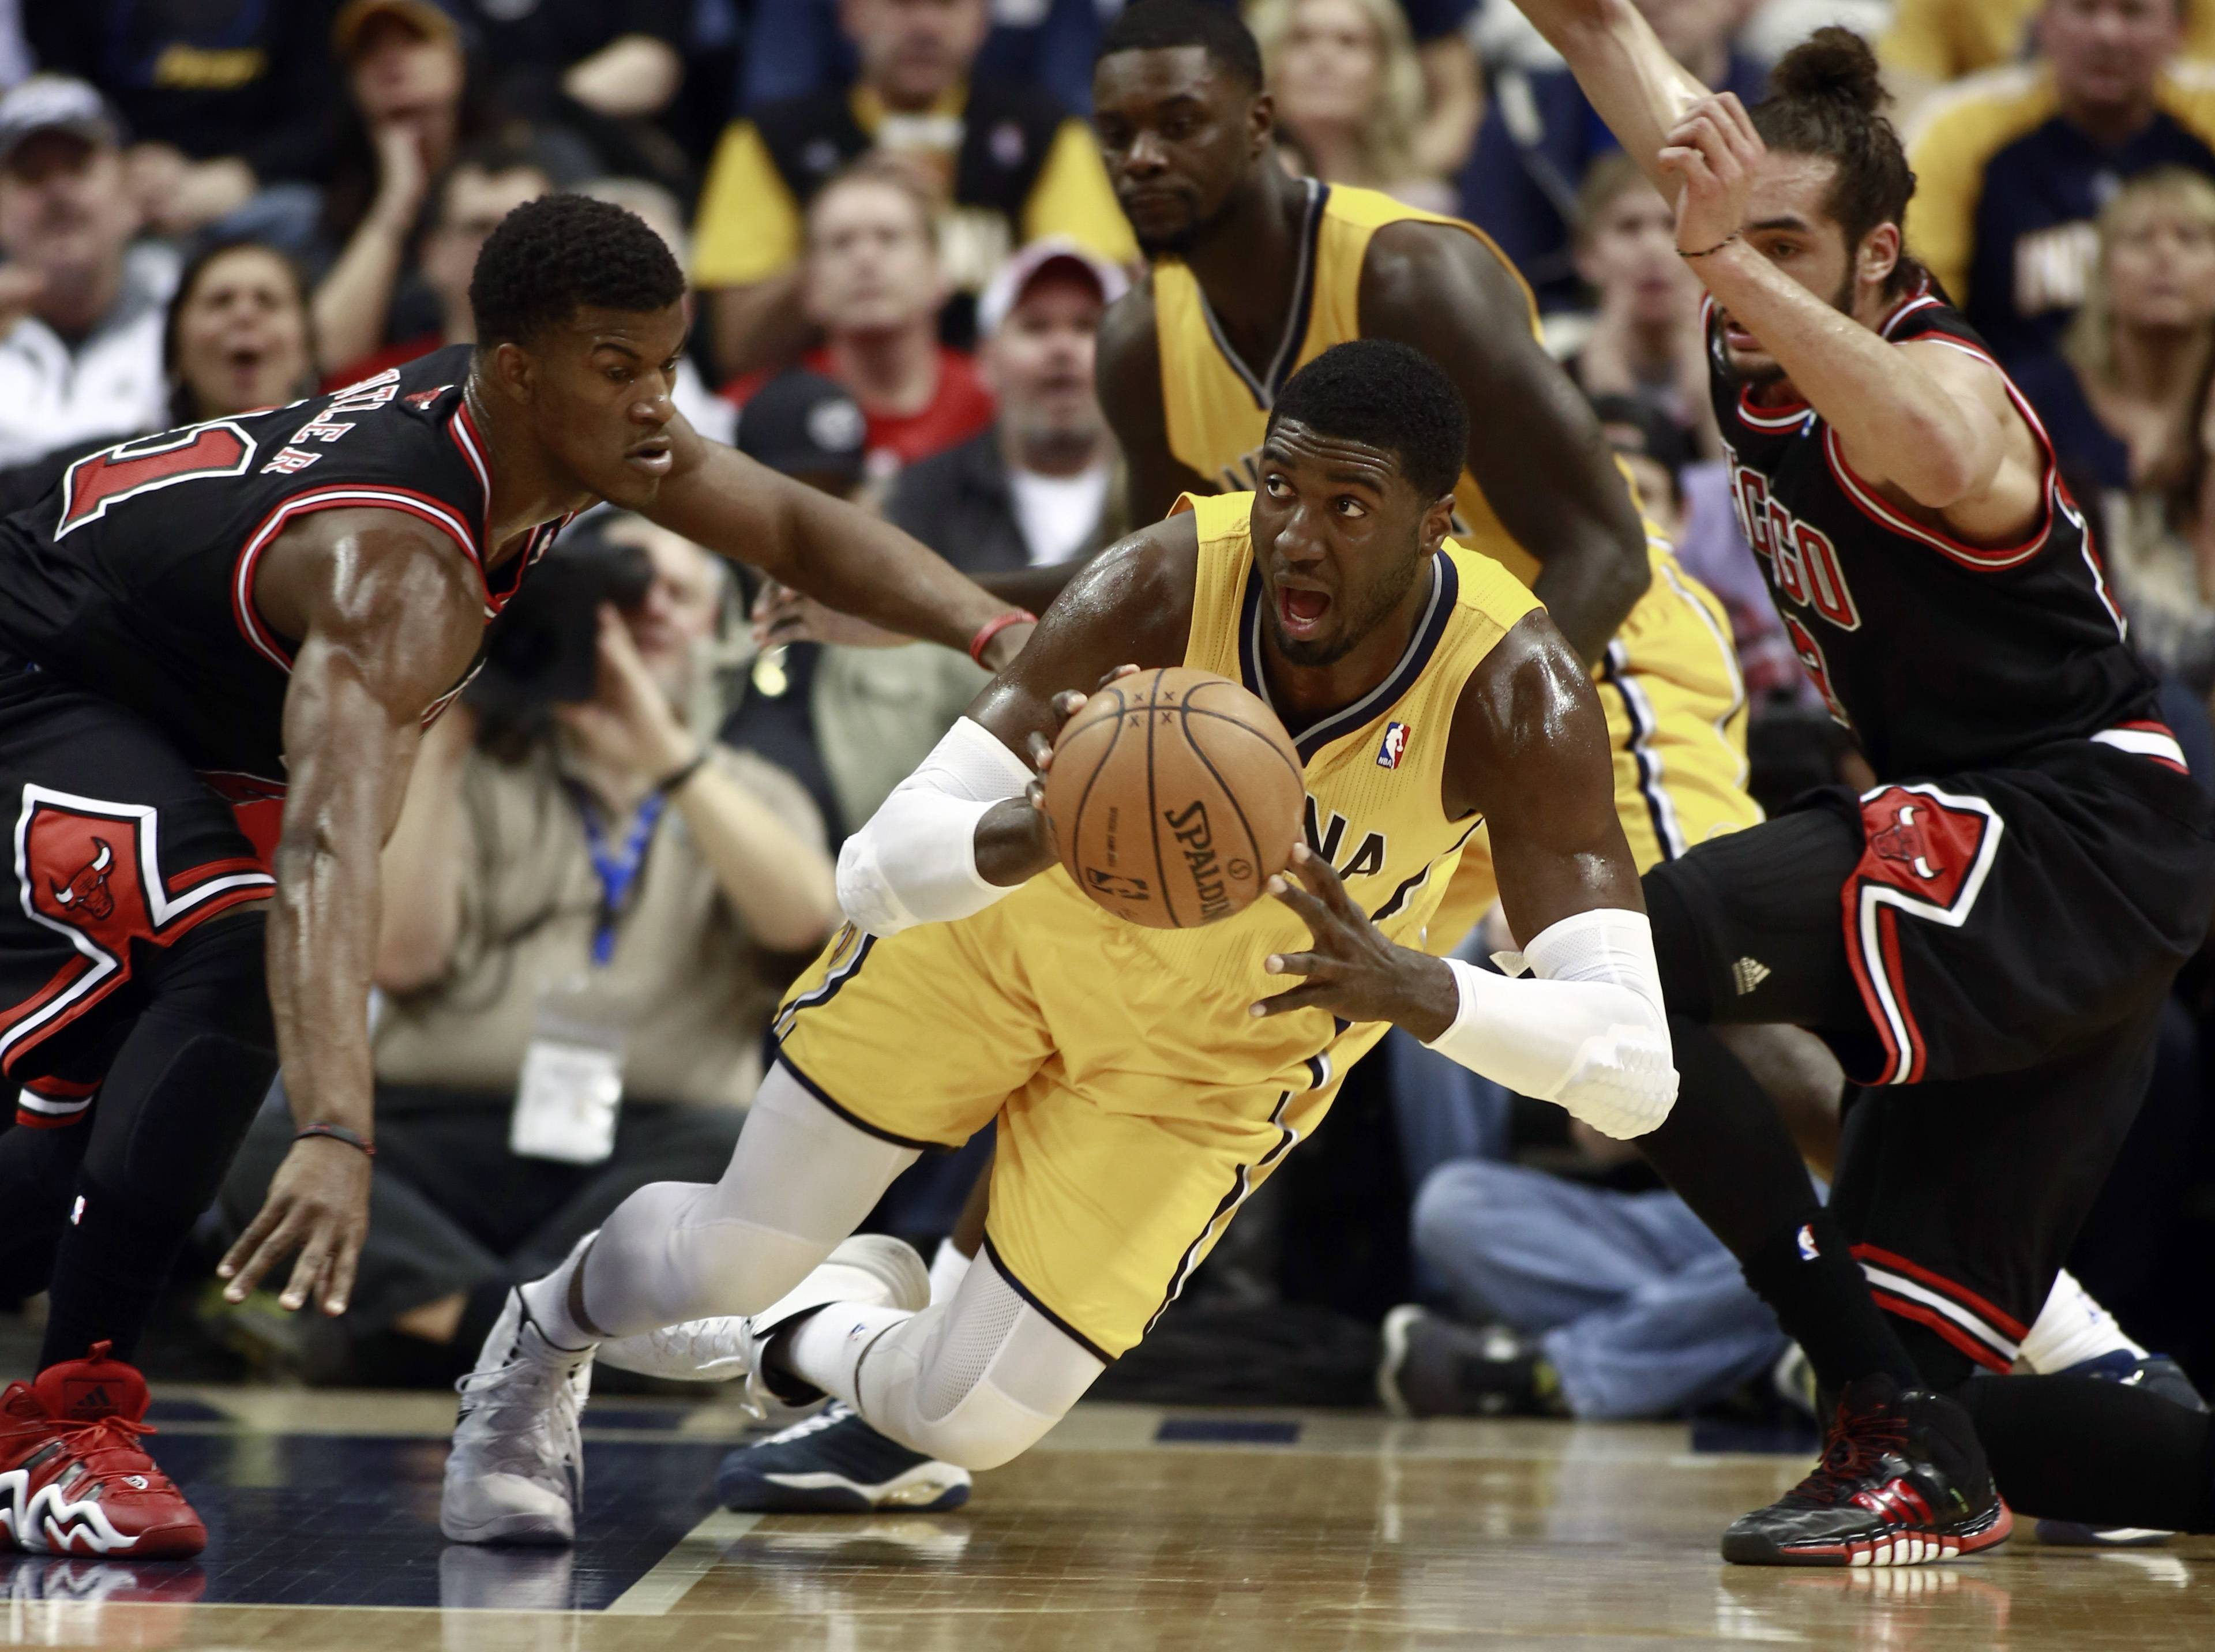 Indiana Pacers center Roy Hibbert passes the basketball while falling as Chicago Bulls guard Jimmy Butler, left, and center Joakim Noah, right, defend during the first half of an NBA basketball game in Indianapolis, Friday, March 21, 2014.